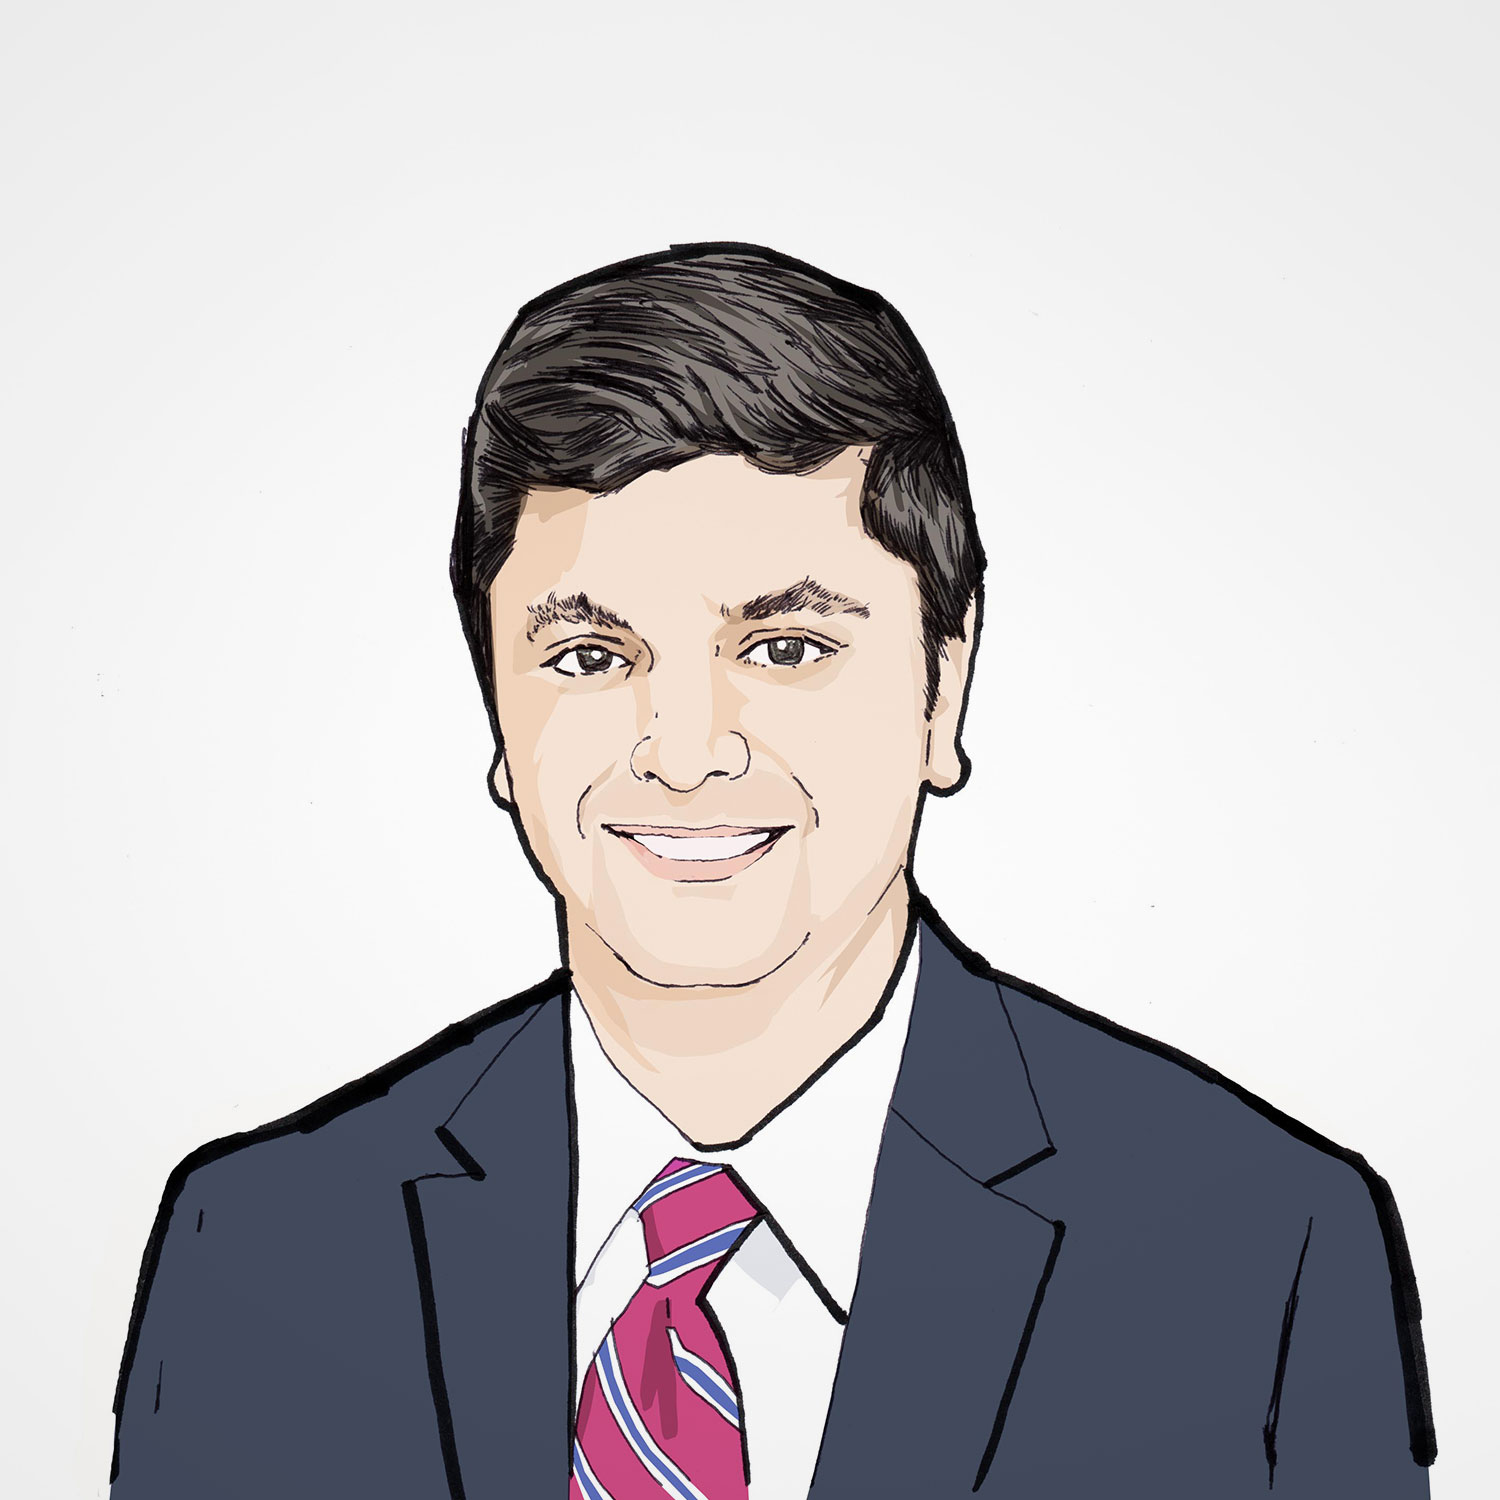 Illustration of Kaustubh Wagle